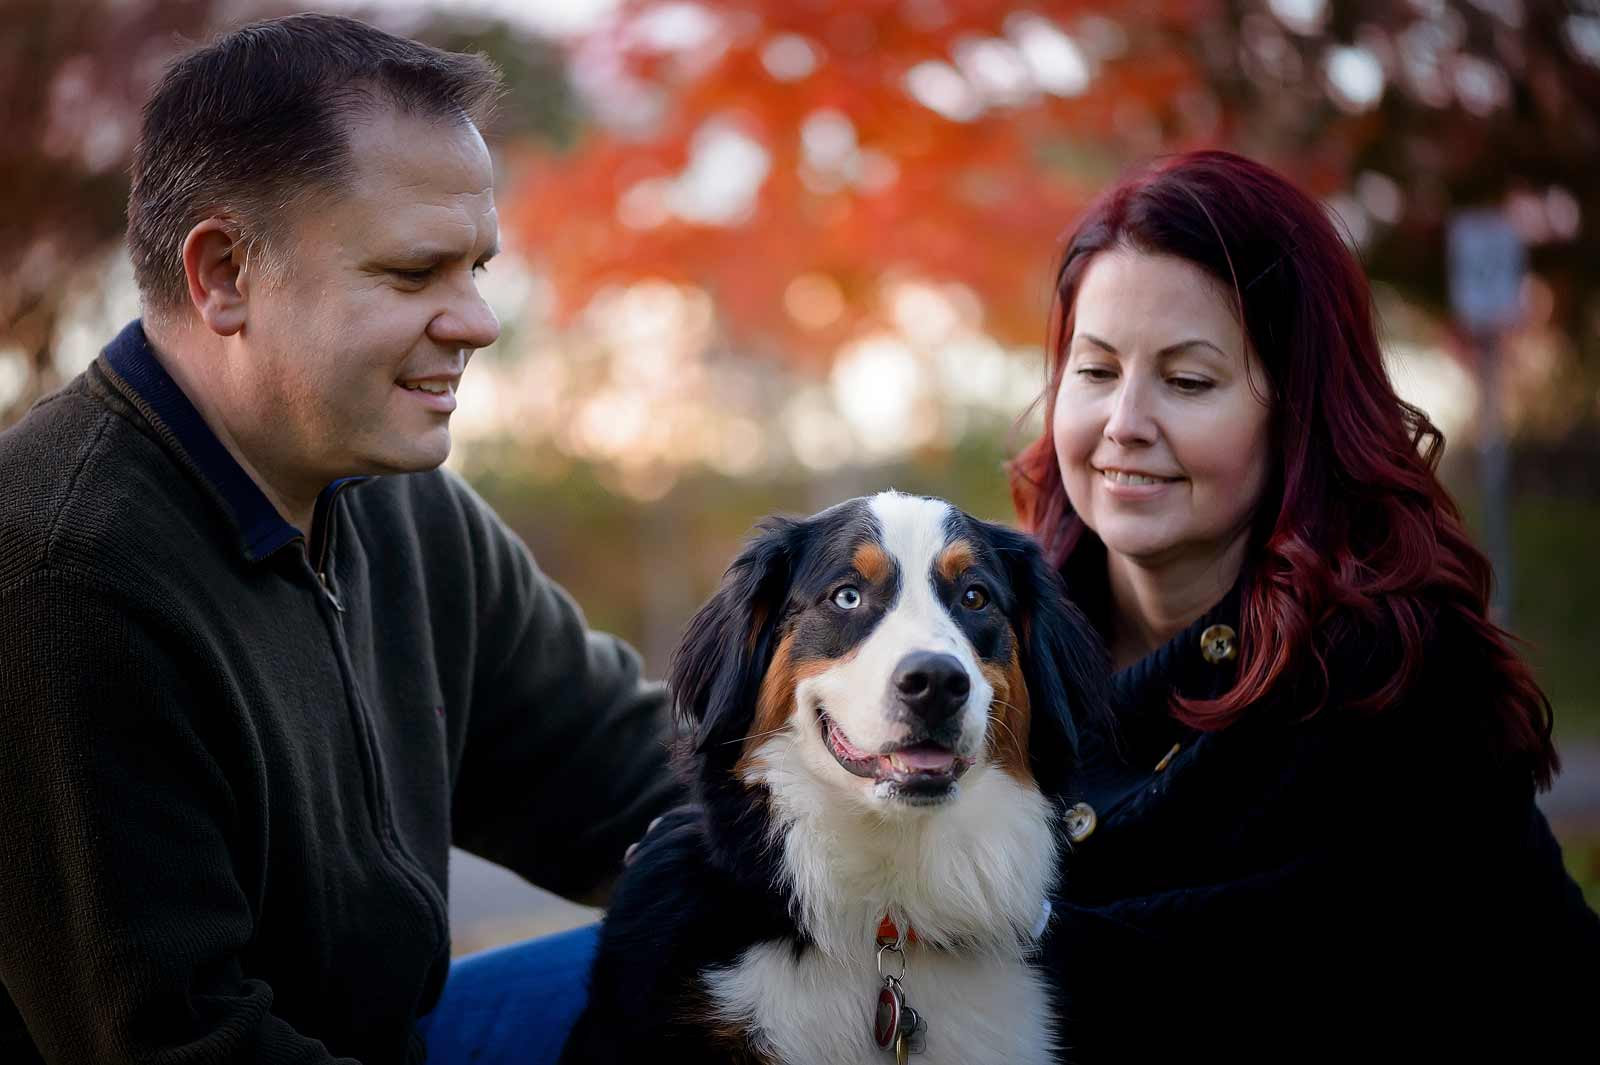 Ottawa Dog Photographer Princess Leia the Bernese mountain dog at Lemieux Island with his owners in the fall